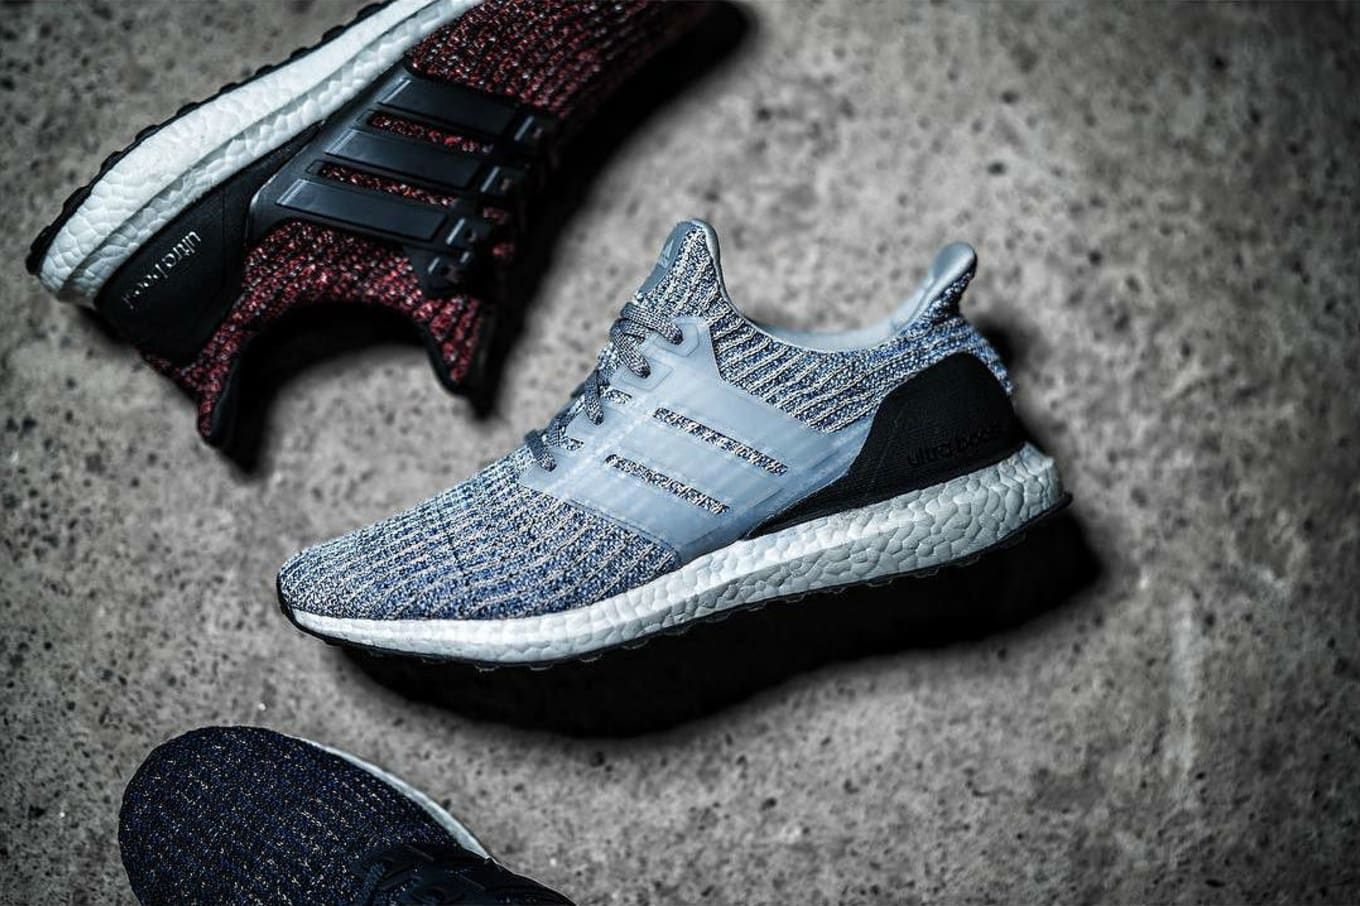 a5936a0b6 The Best Look at the Adidas Ultra Boost 4.0 Yet